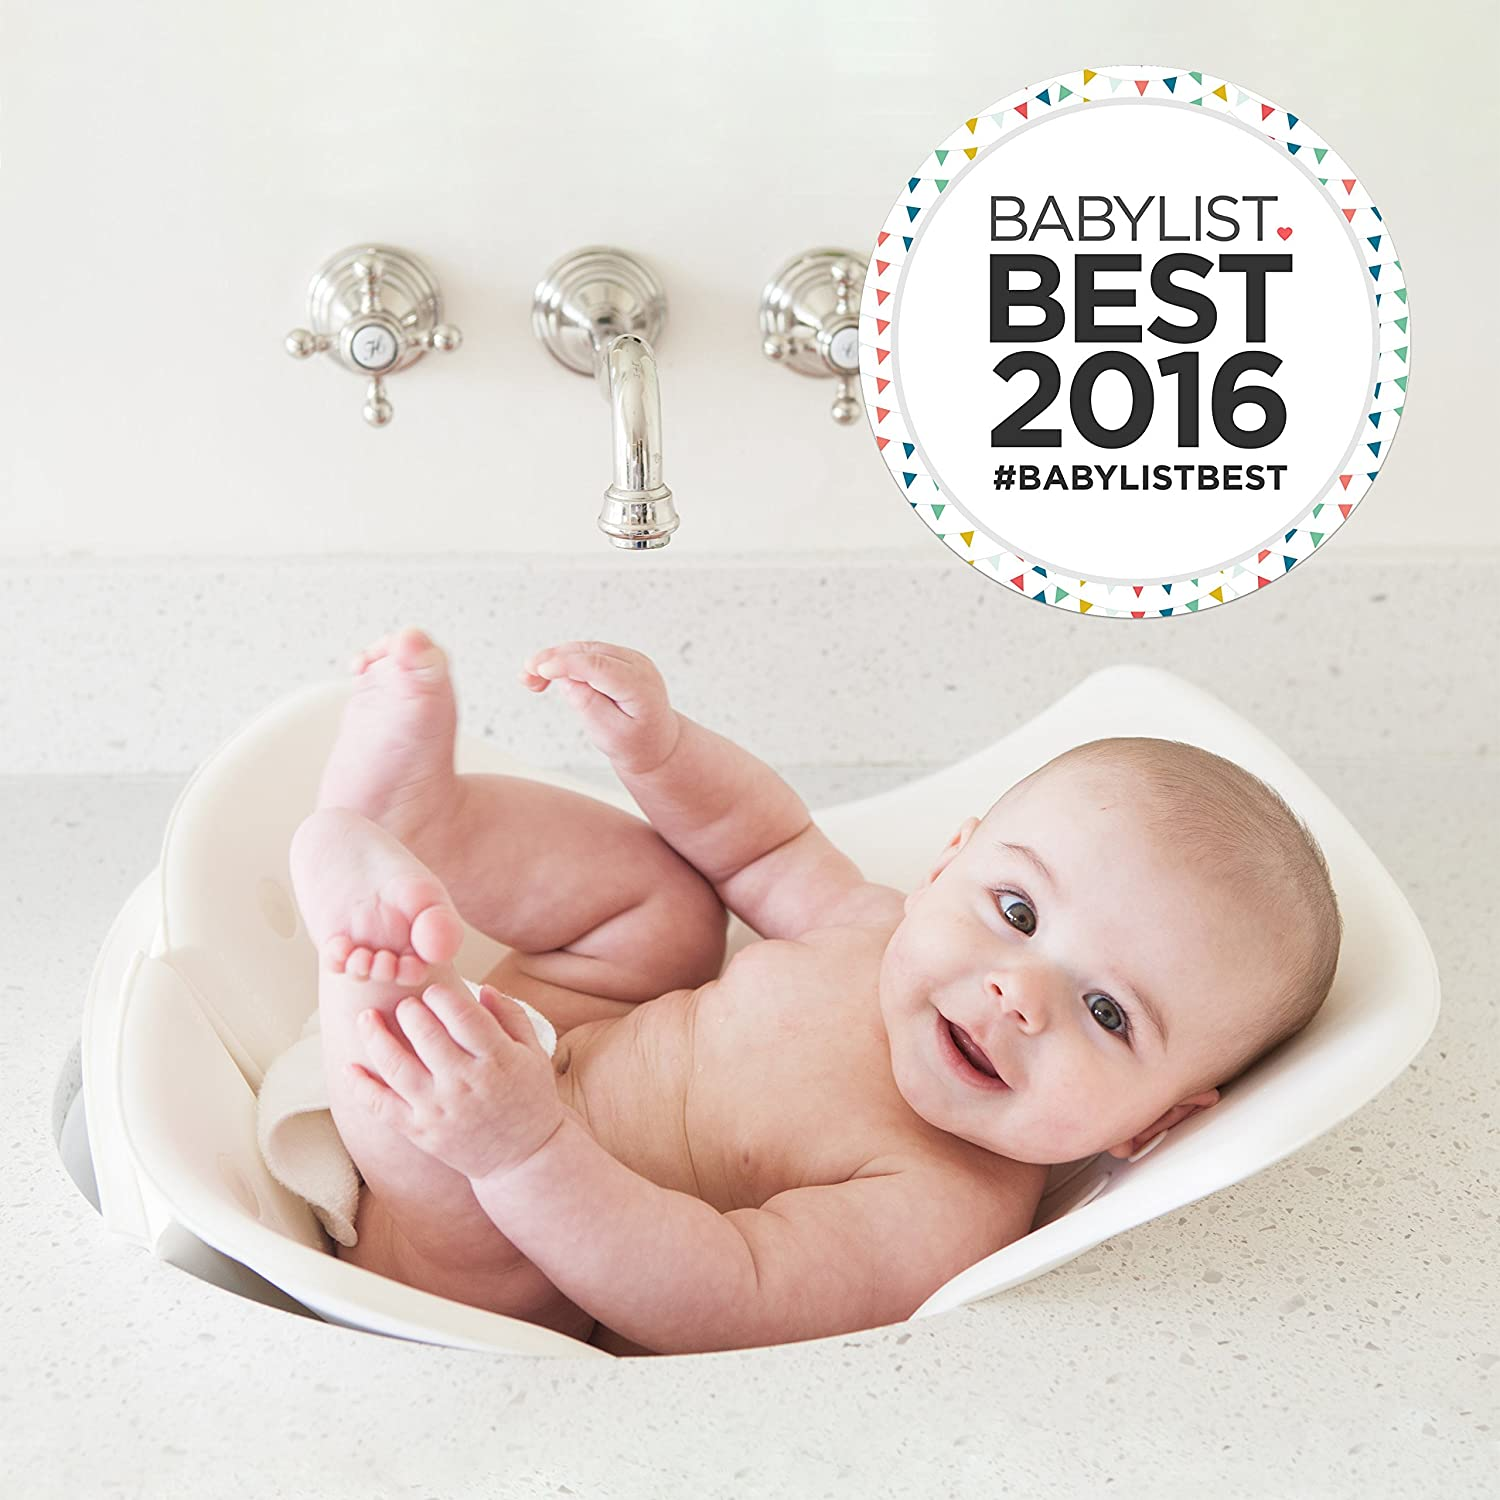 Amazon.com : Puj Tub - The Soft, Foldable Baby Bathtub - Newborn ...